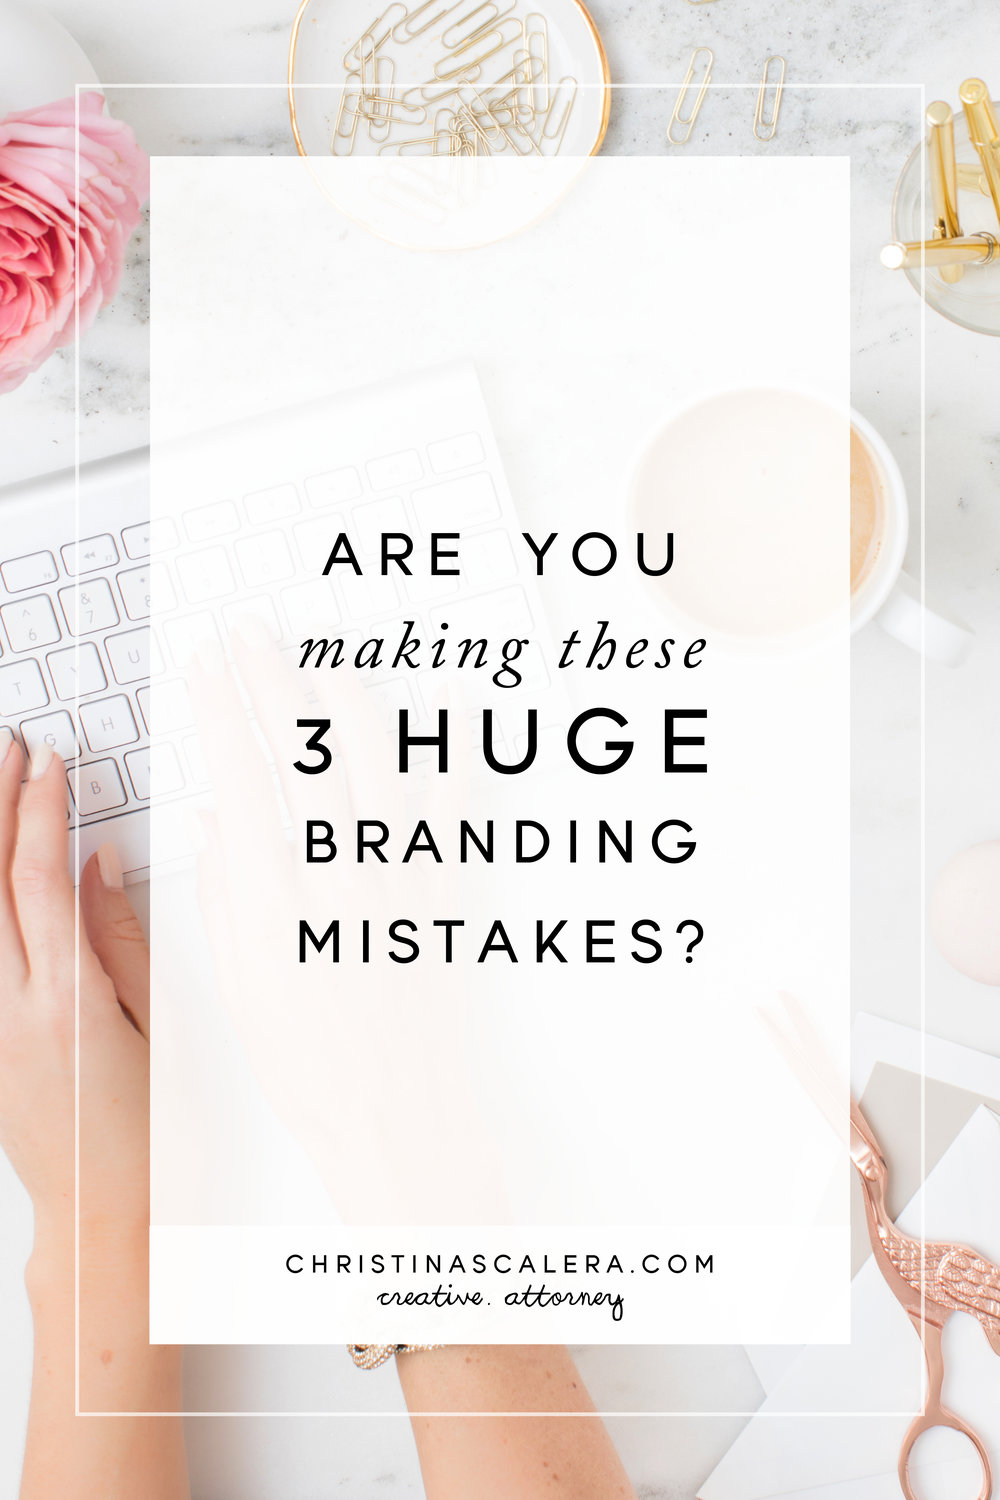 3 Huge Branding Mistakes, Are You Making Them?